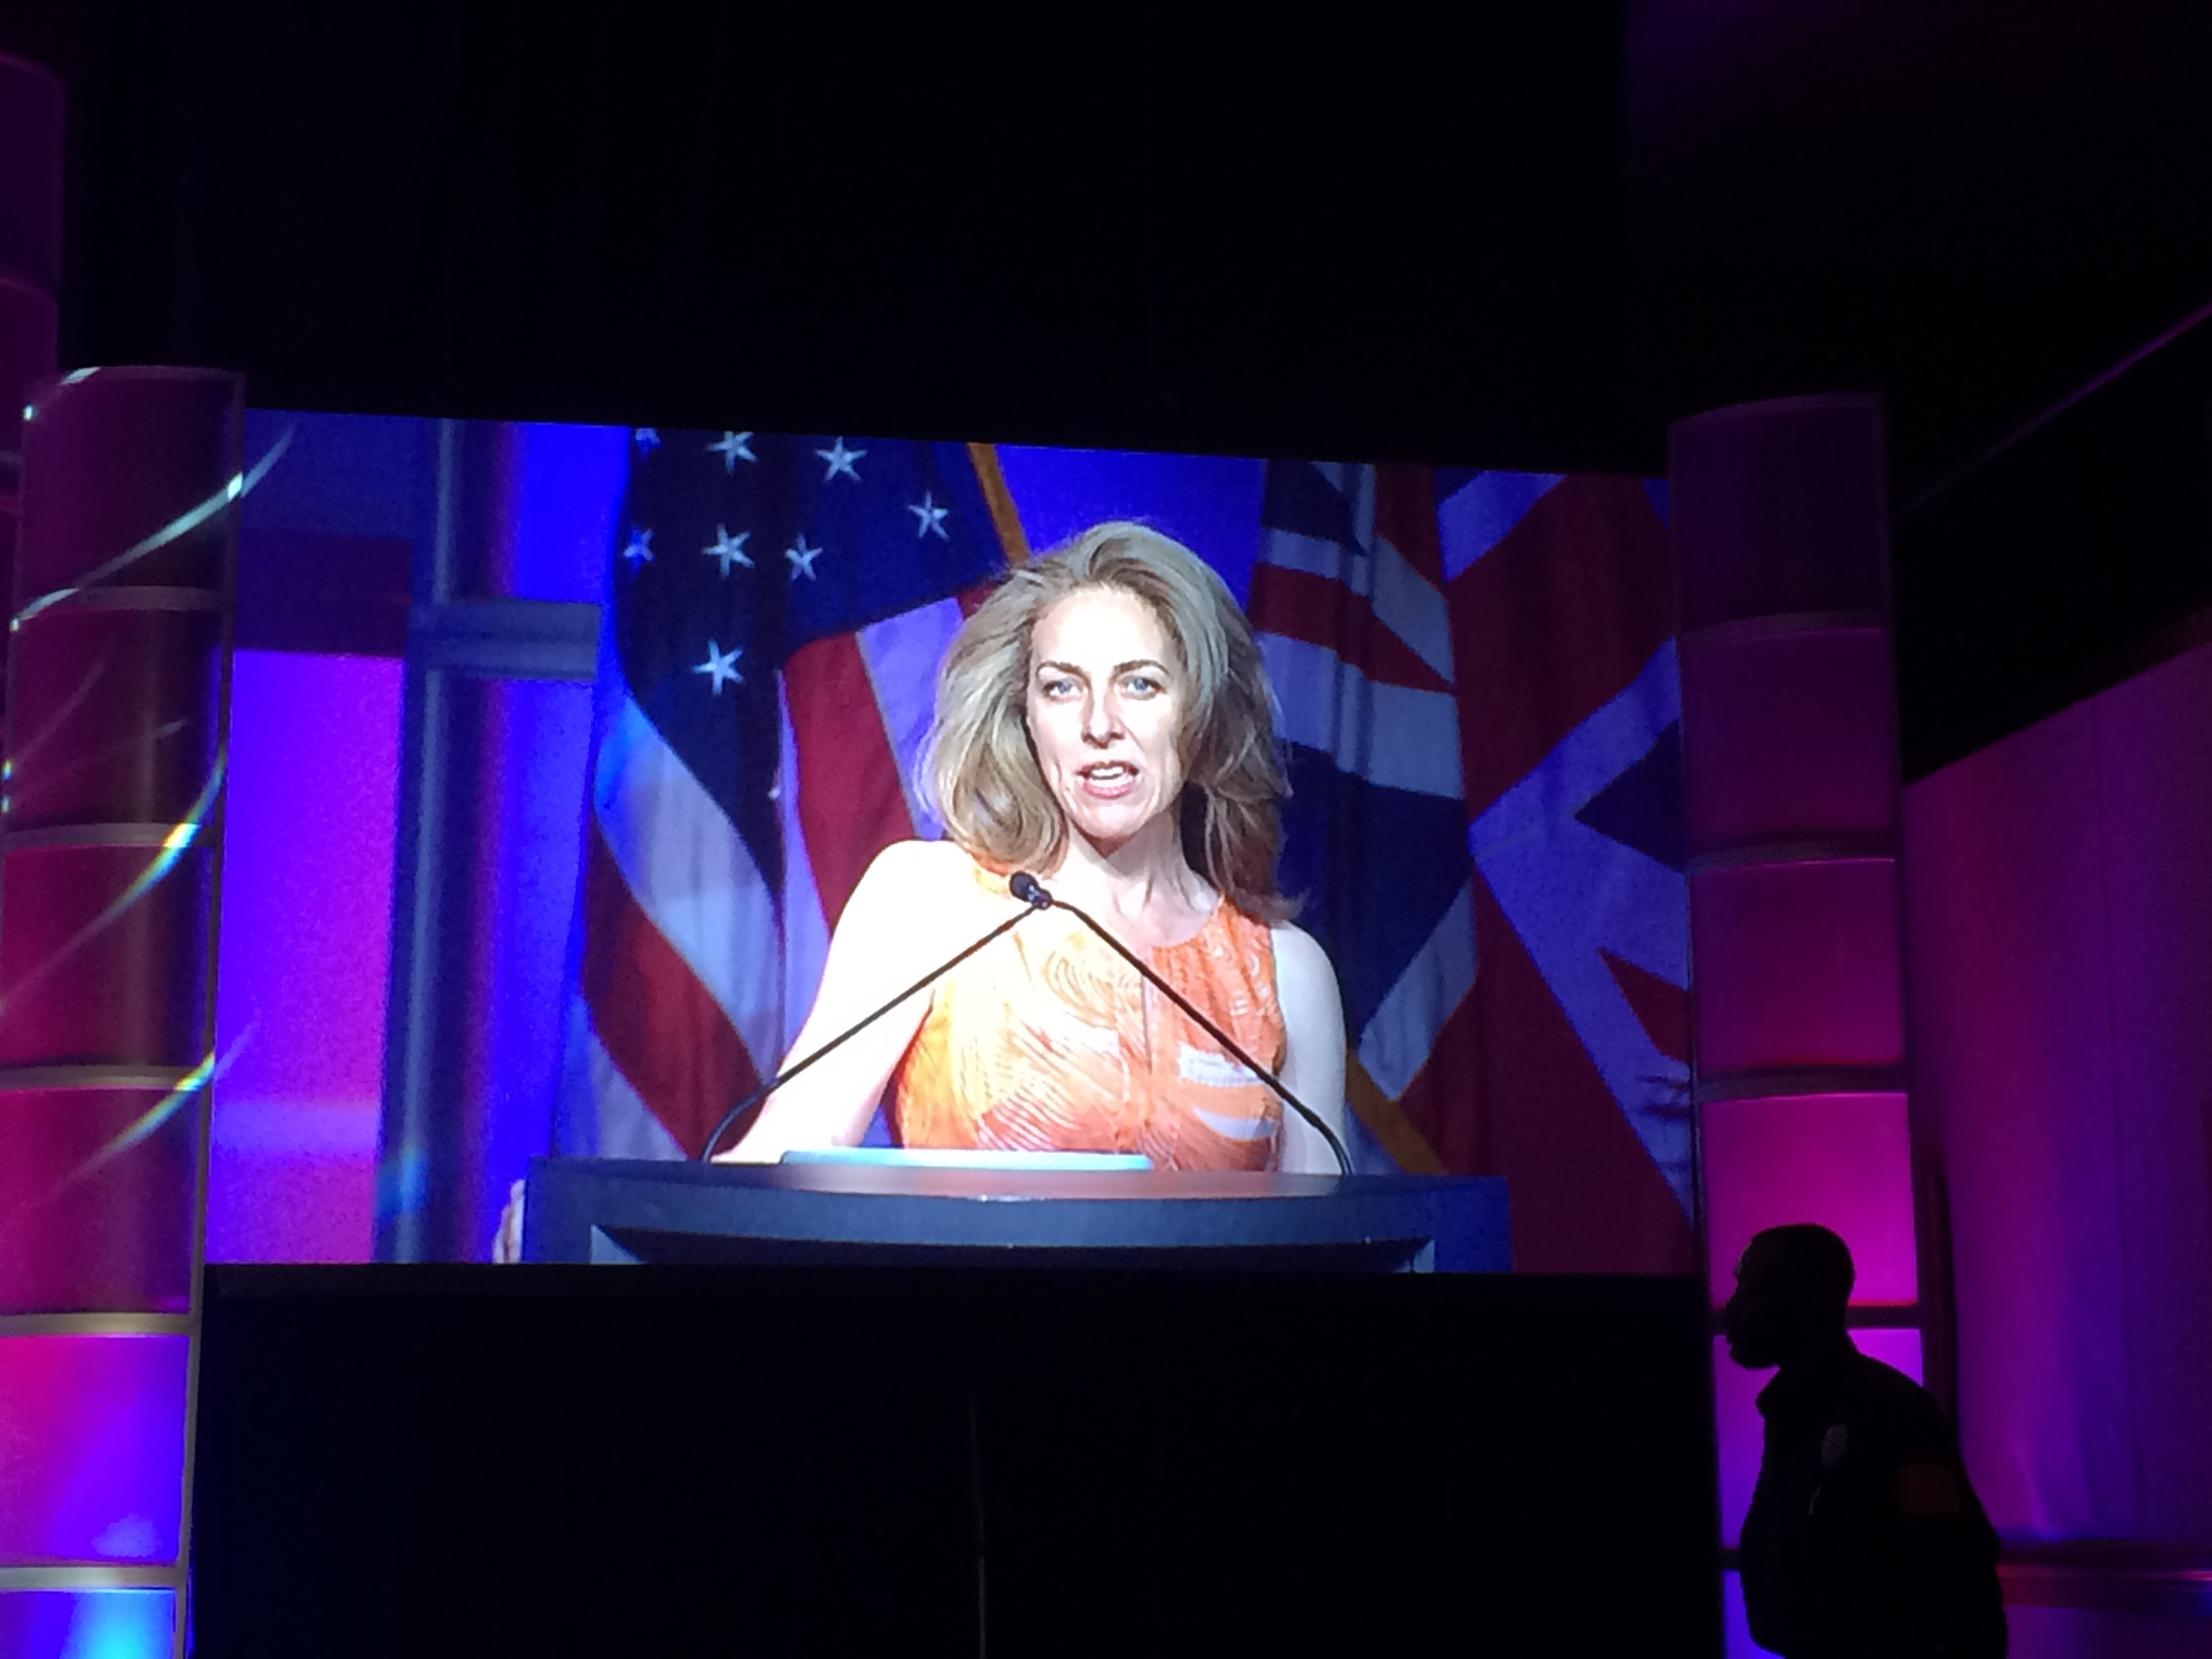 Susannah Fox on screen at the Datapalooza - Photo by @CarlyRM